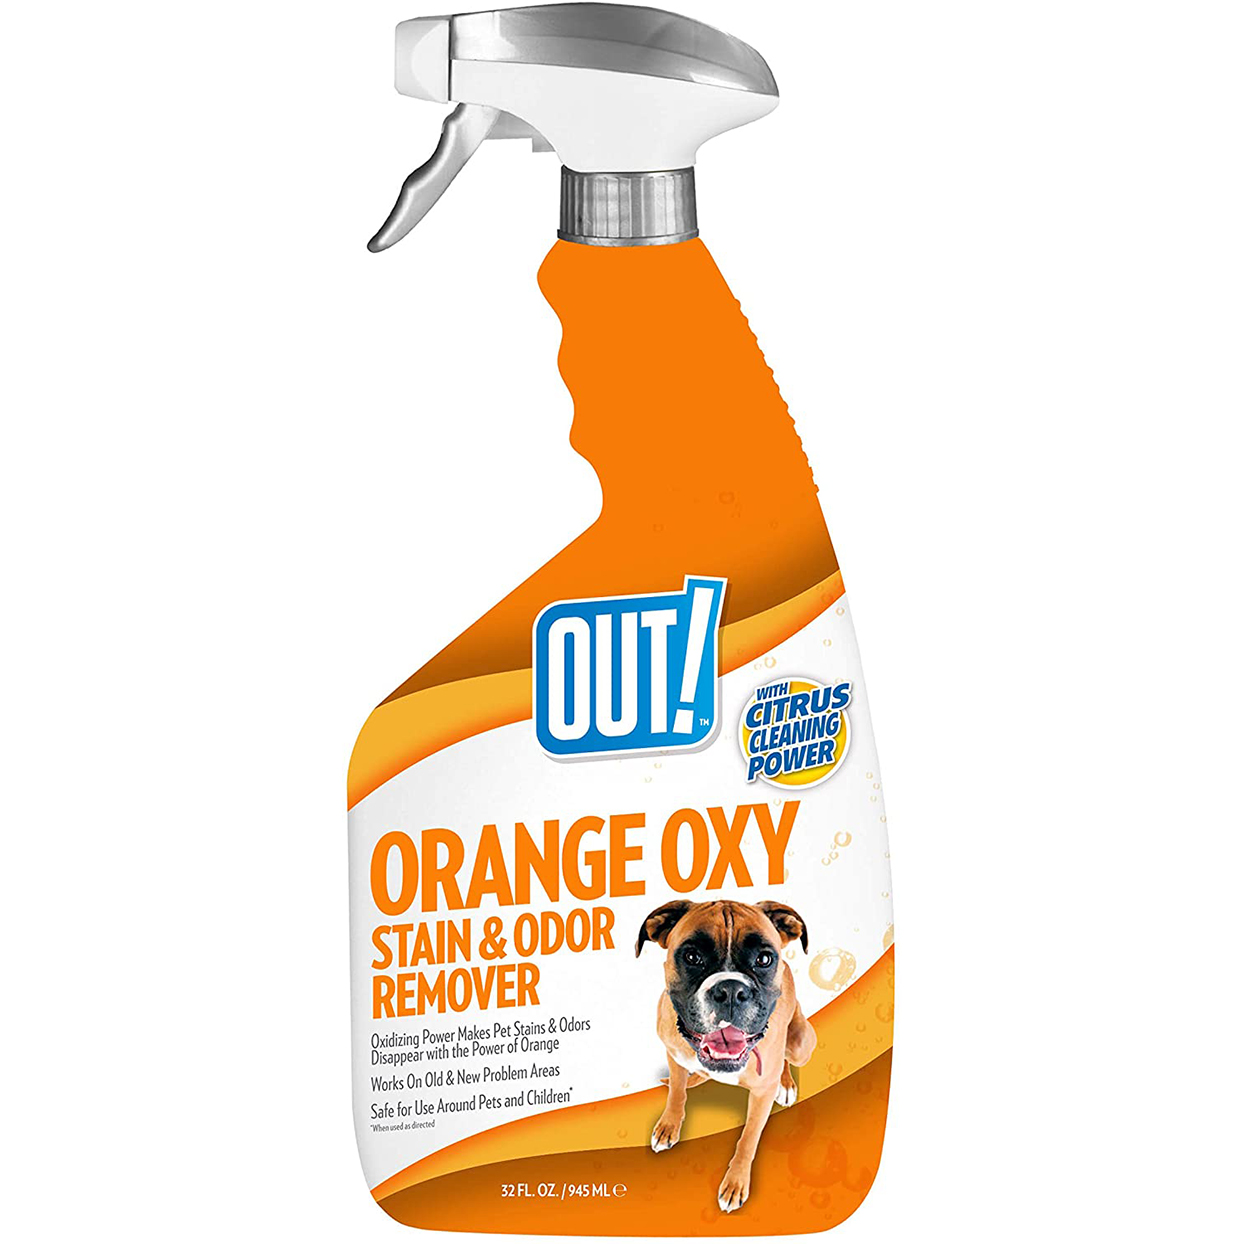 out orange oxy stain odor remover